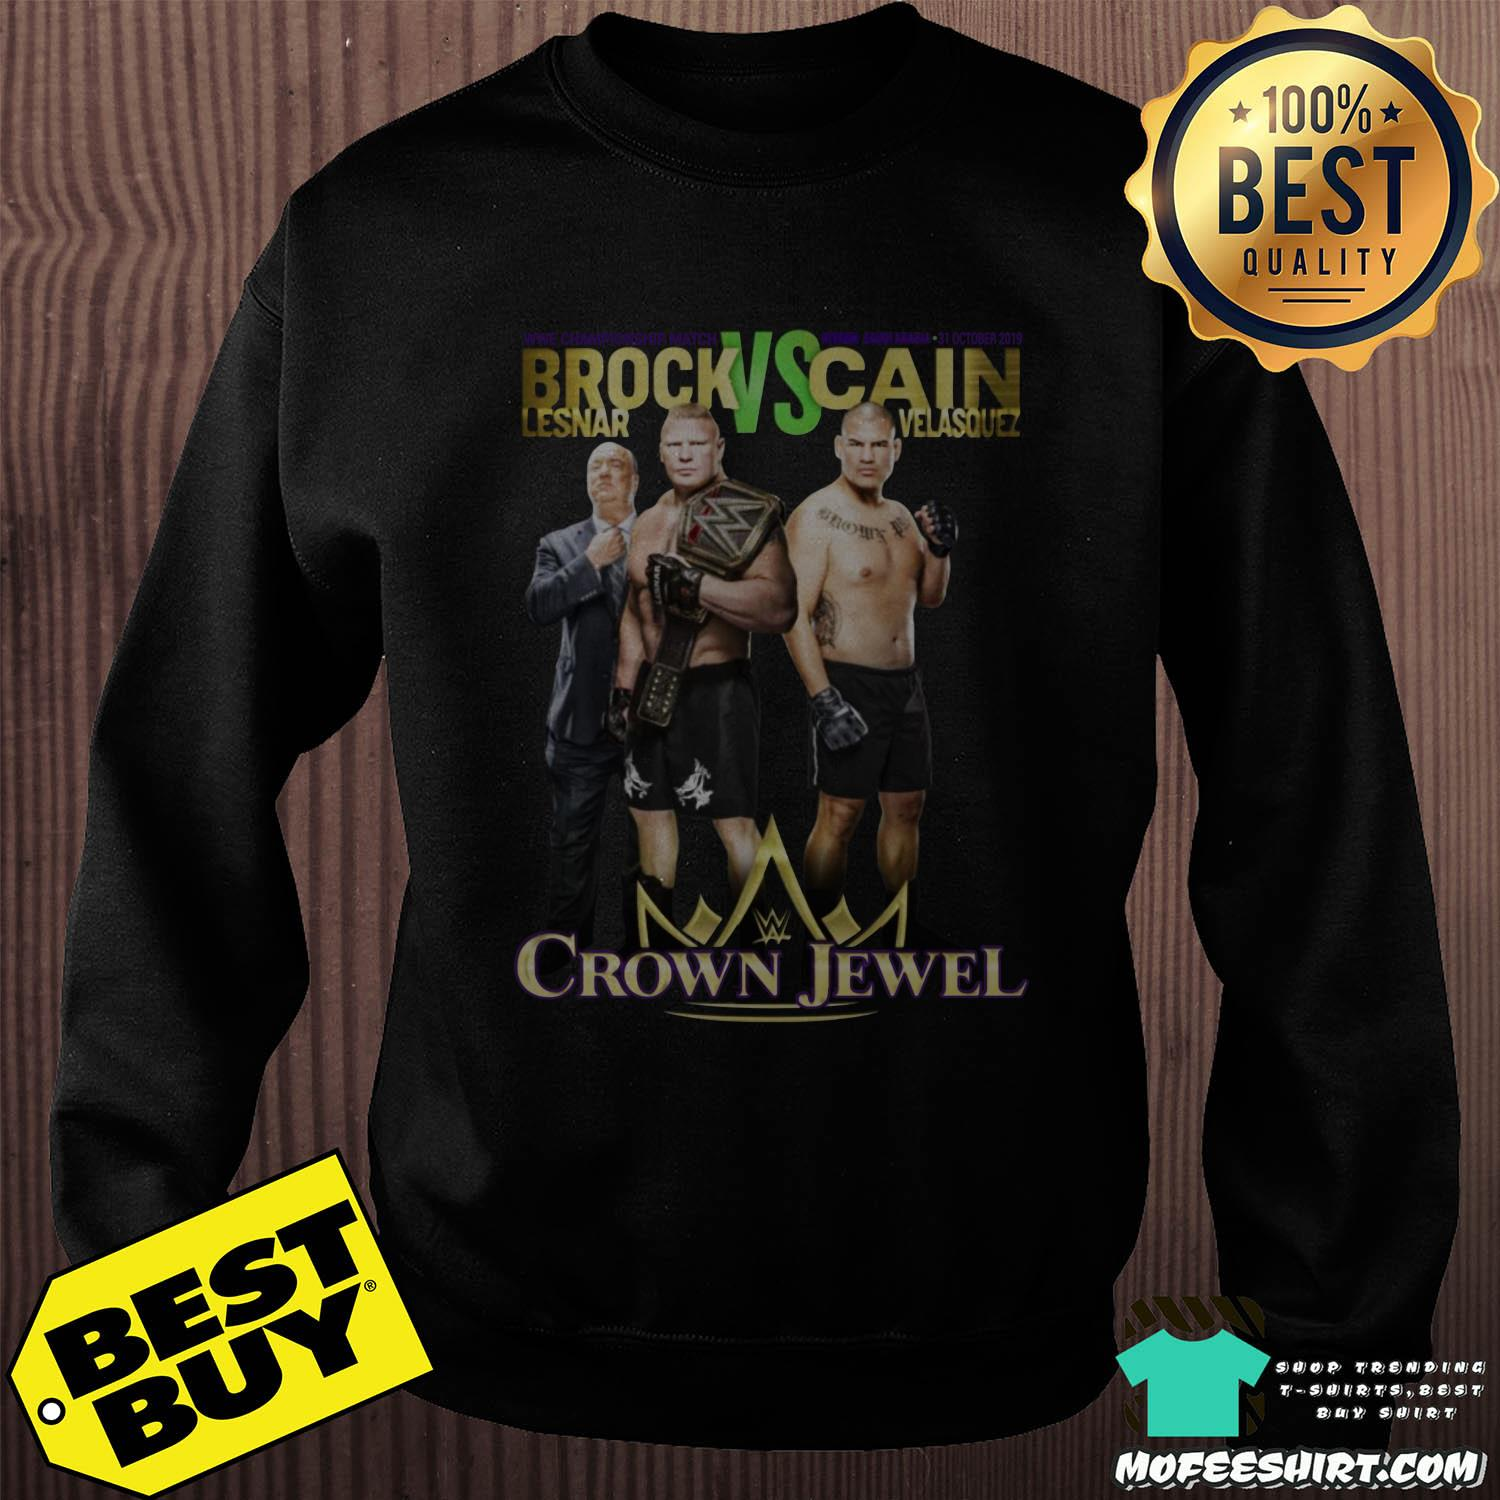 Brock Lesnar Vs Cain Velasquez Crown Jewel Shirt